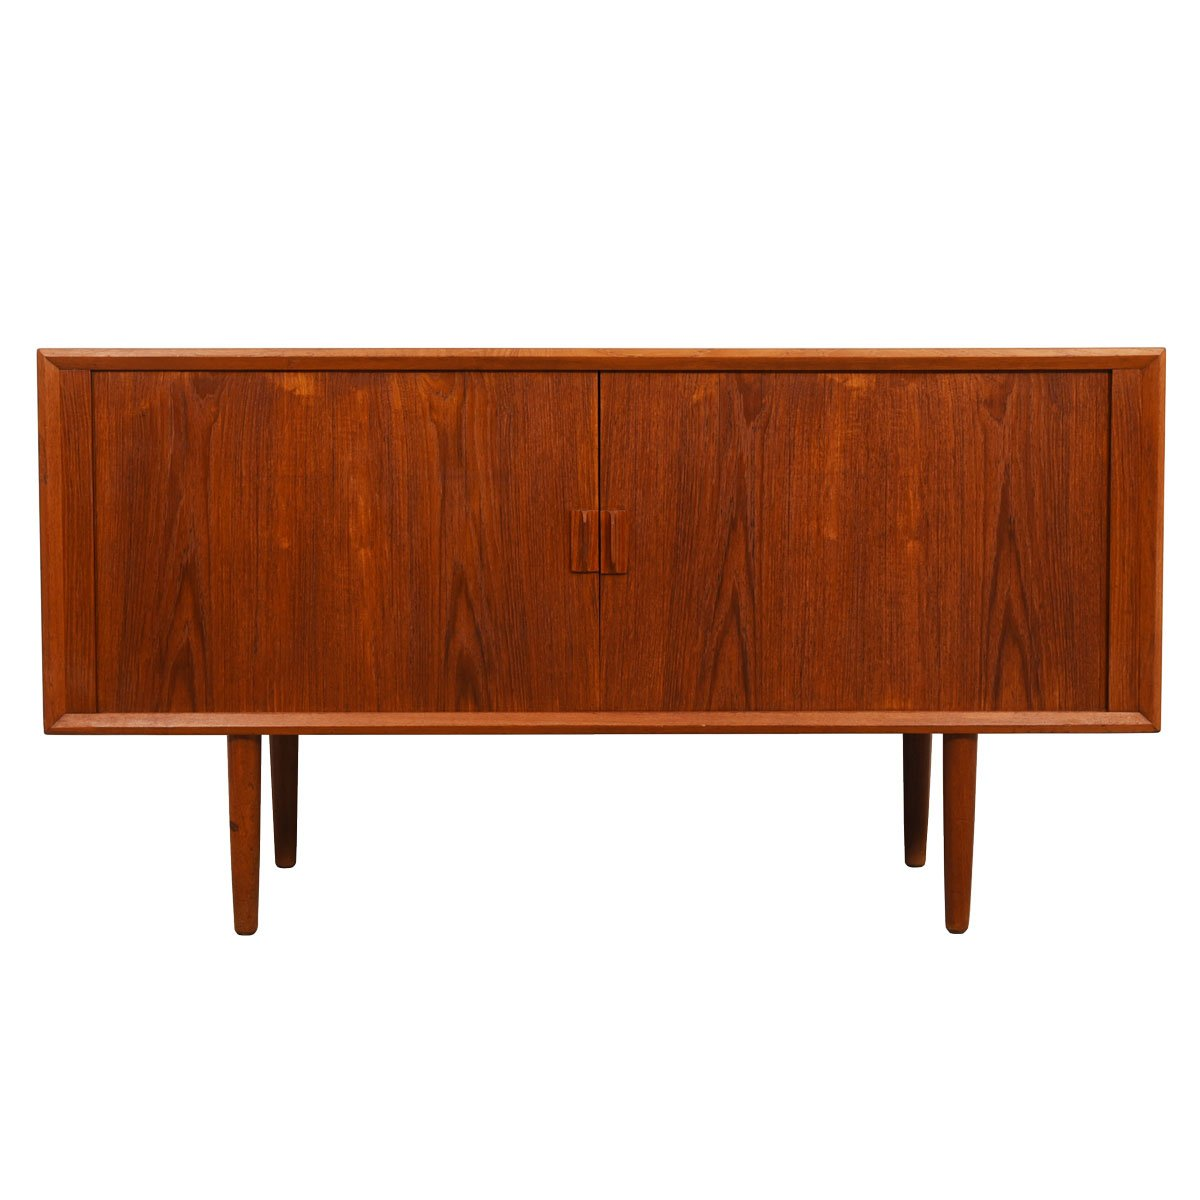 59″ Danish Teak Sideboard — Tambour Door Room Divider.